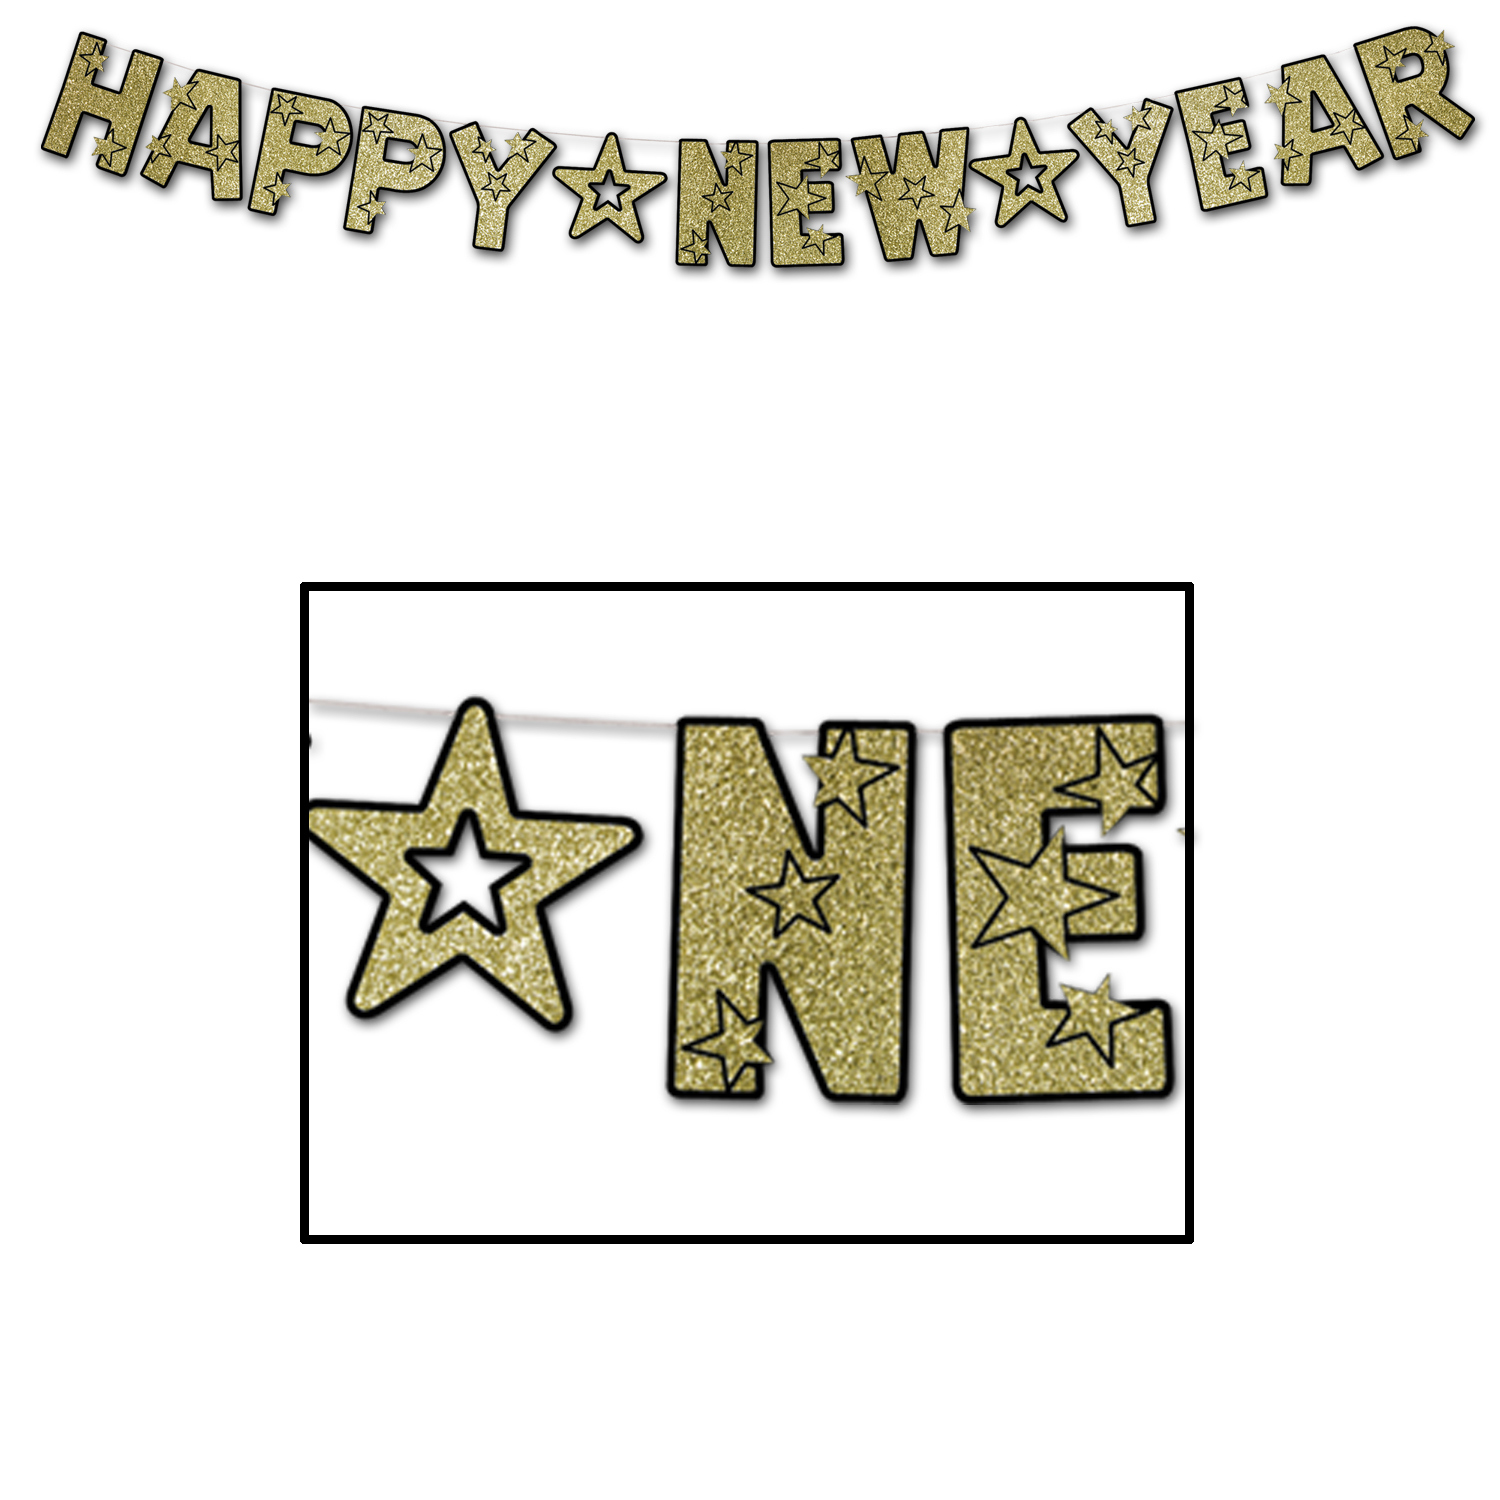 Glittered Happy New Year Streamer (Pack of 1) glittered, happy, new, year, streamer, confetti, black, gold, party, eve, celebration